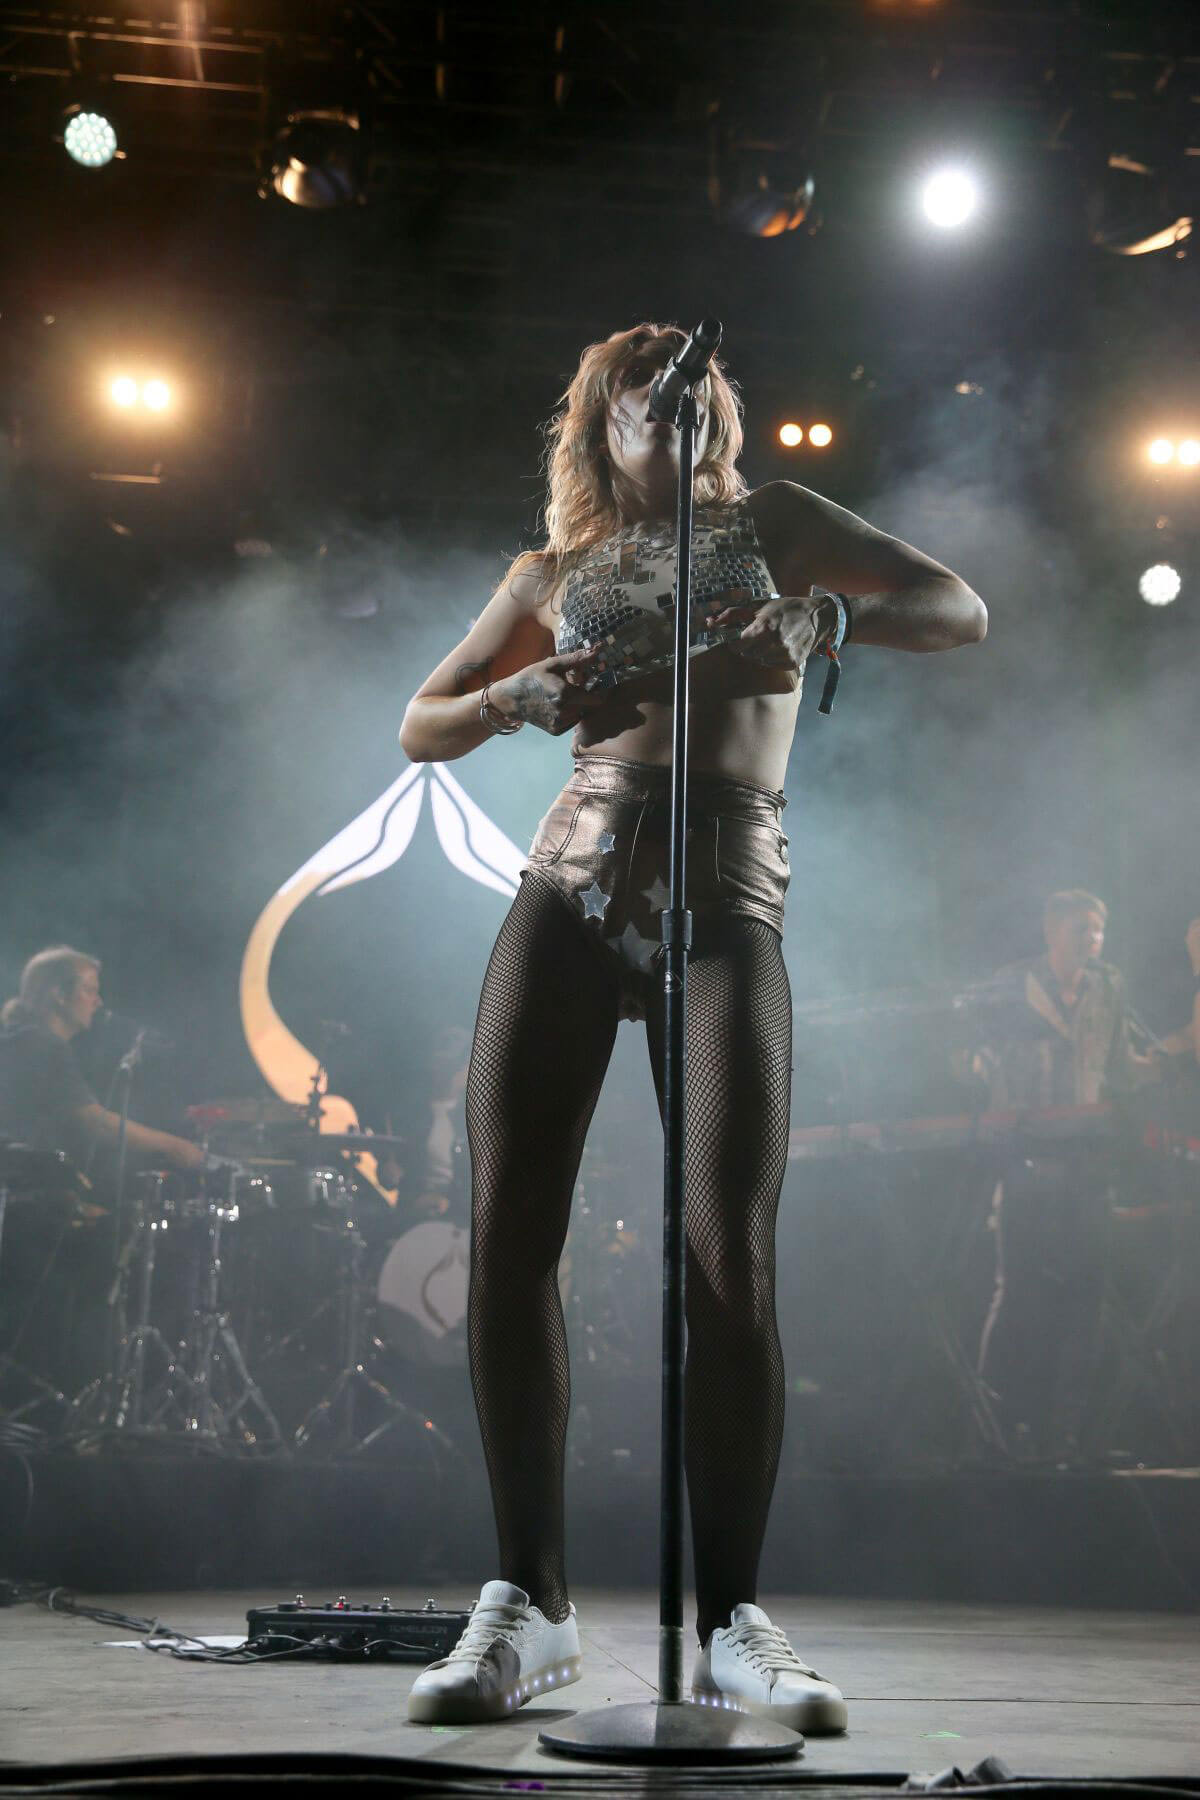 Tove Lo Performs at Coachella Valley Music and Arts Festival in Indio